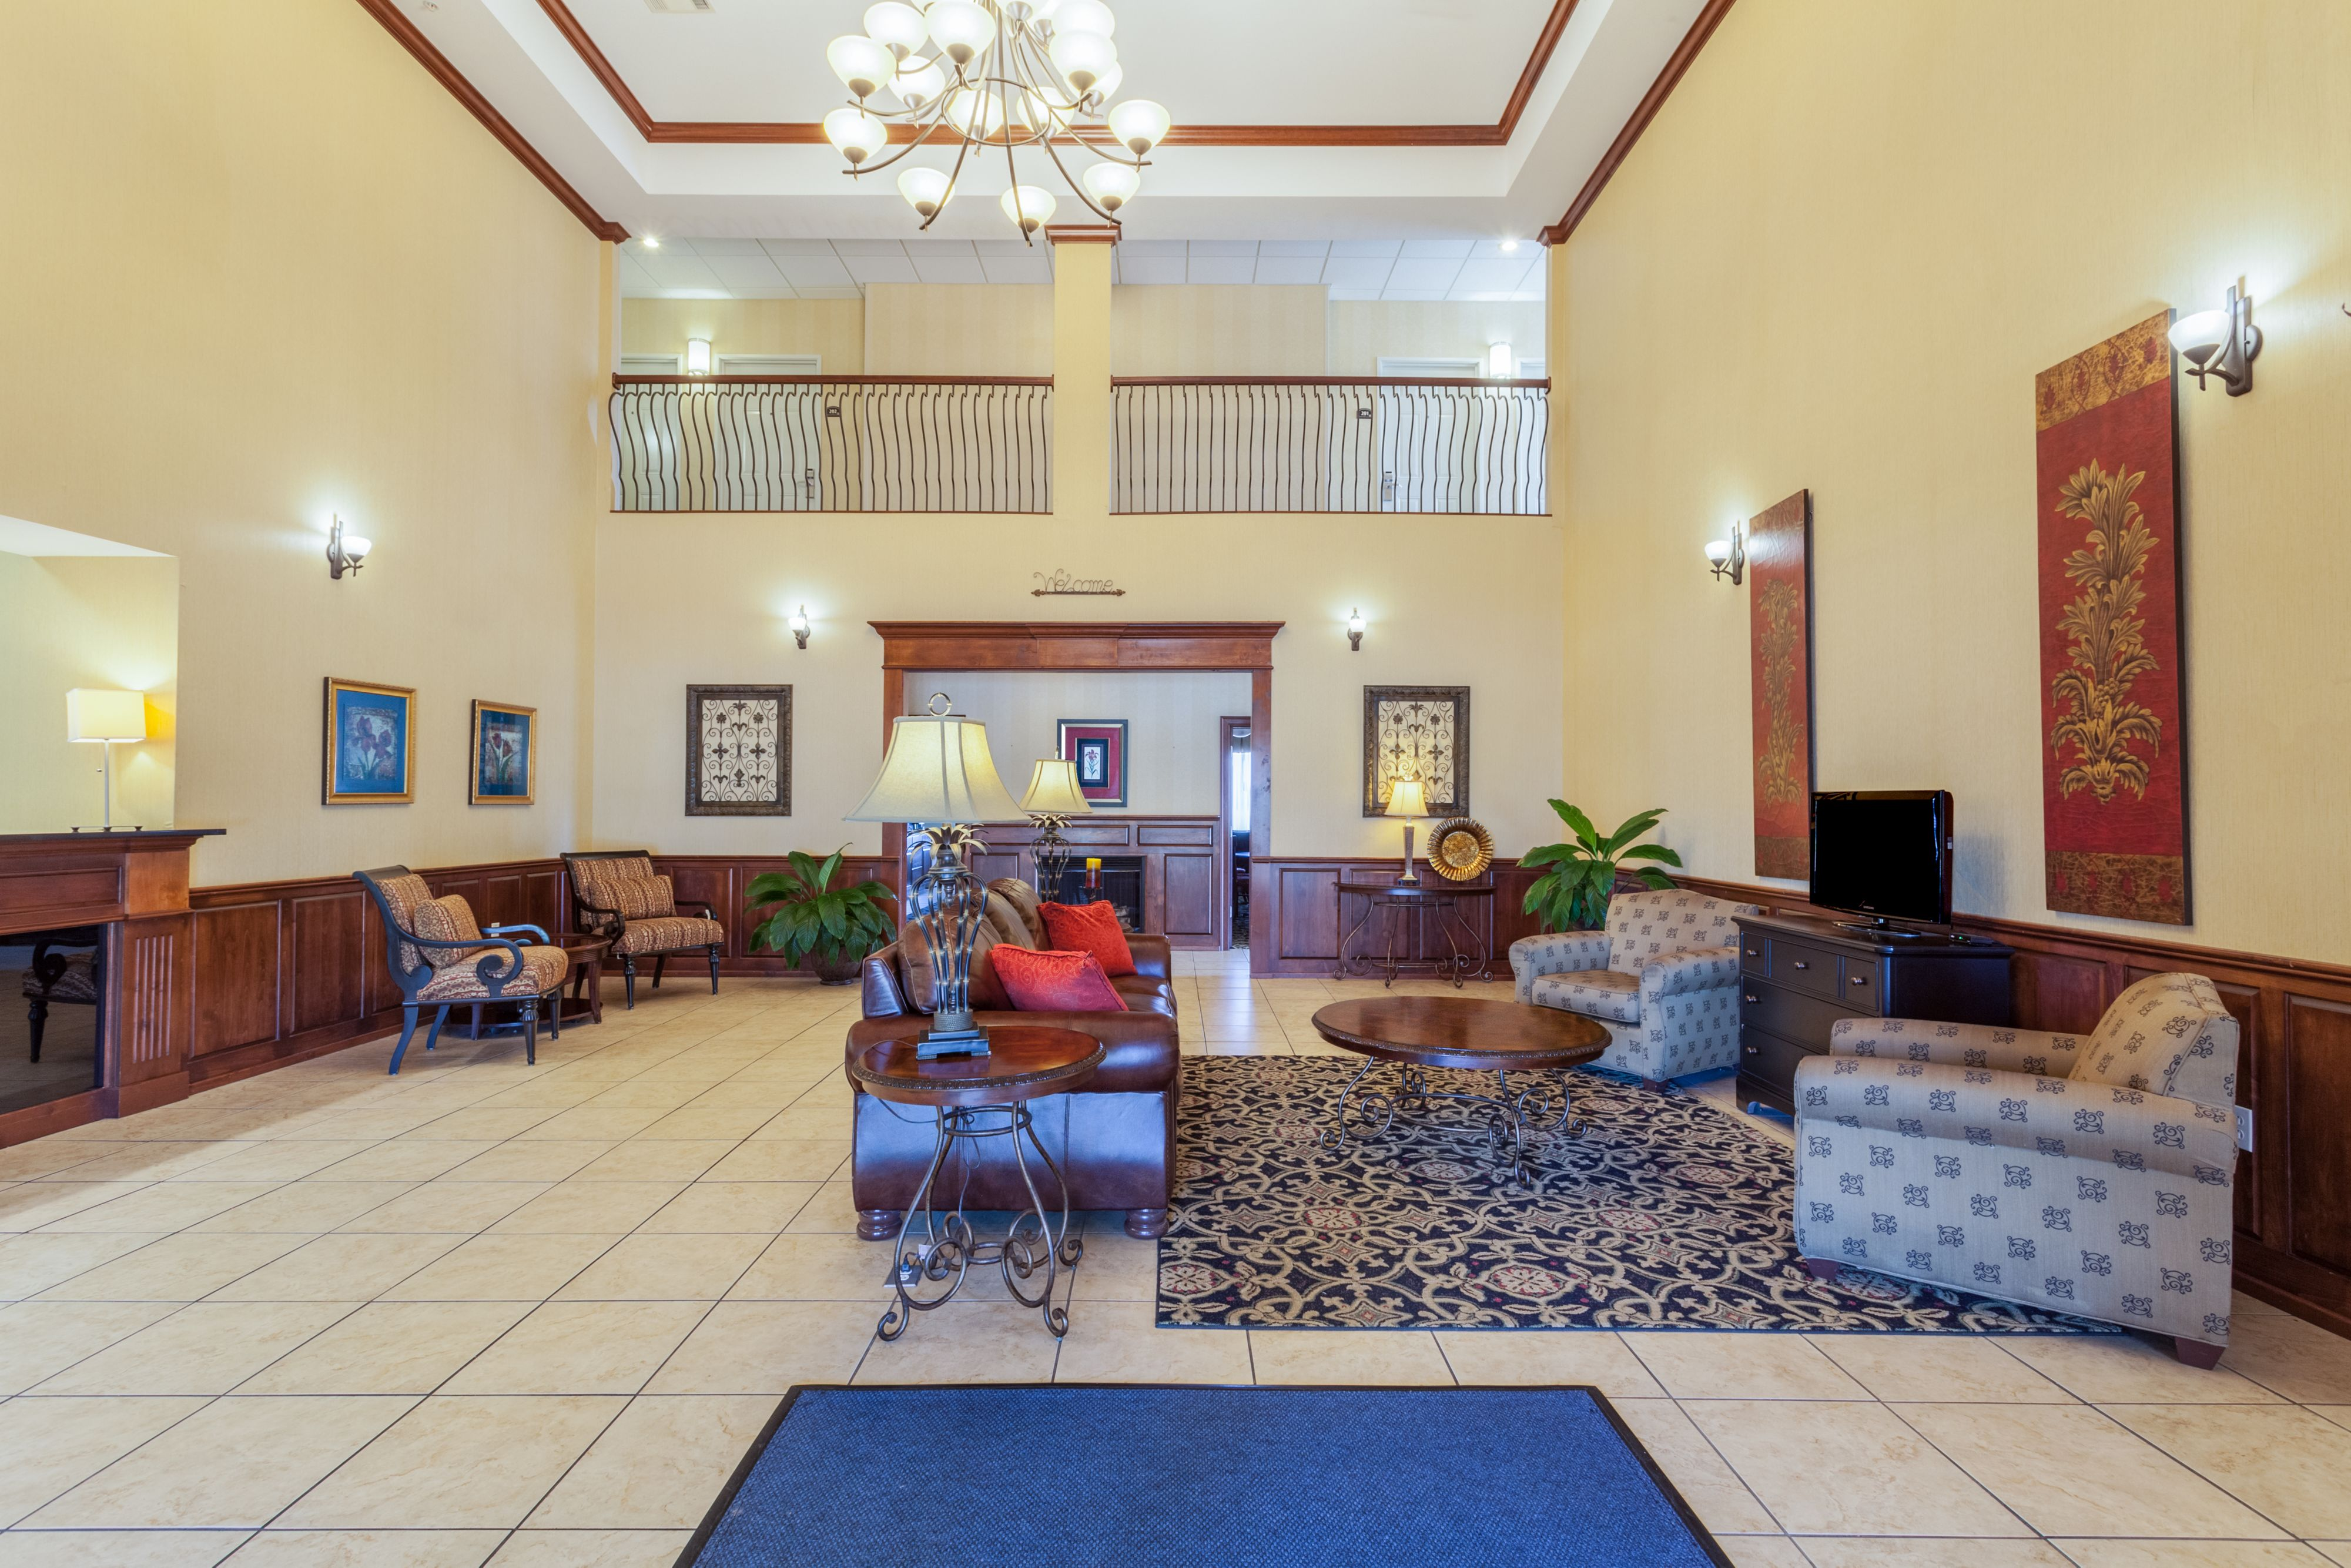 Holiday Inn Express & Suites Clarksville image 10